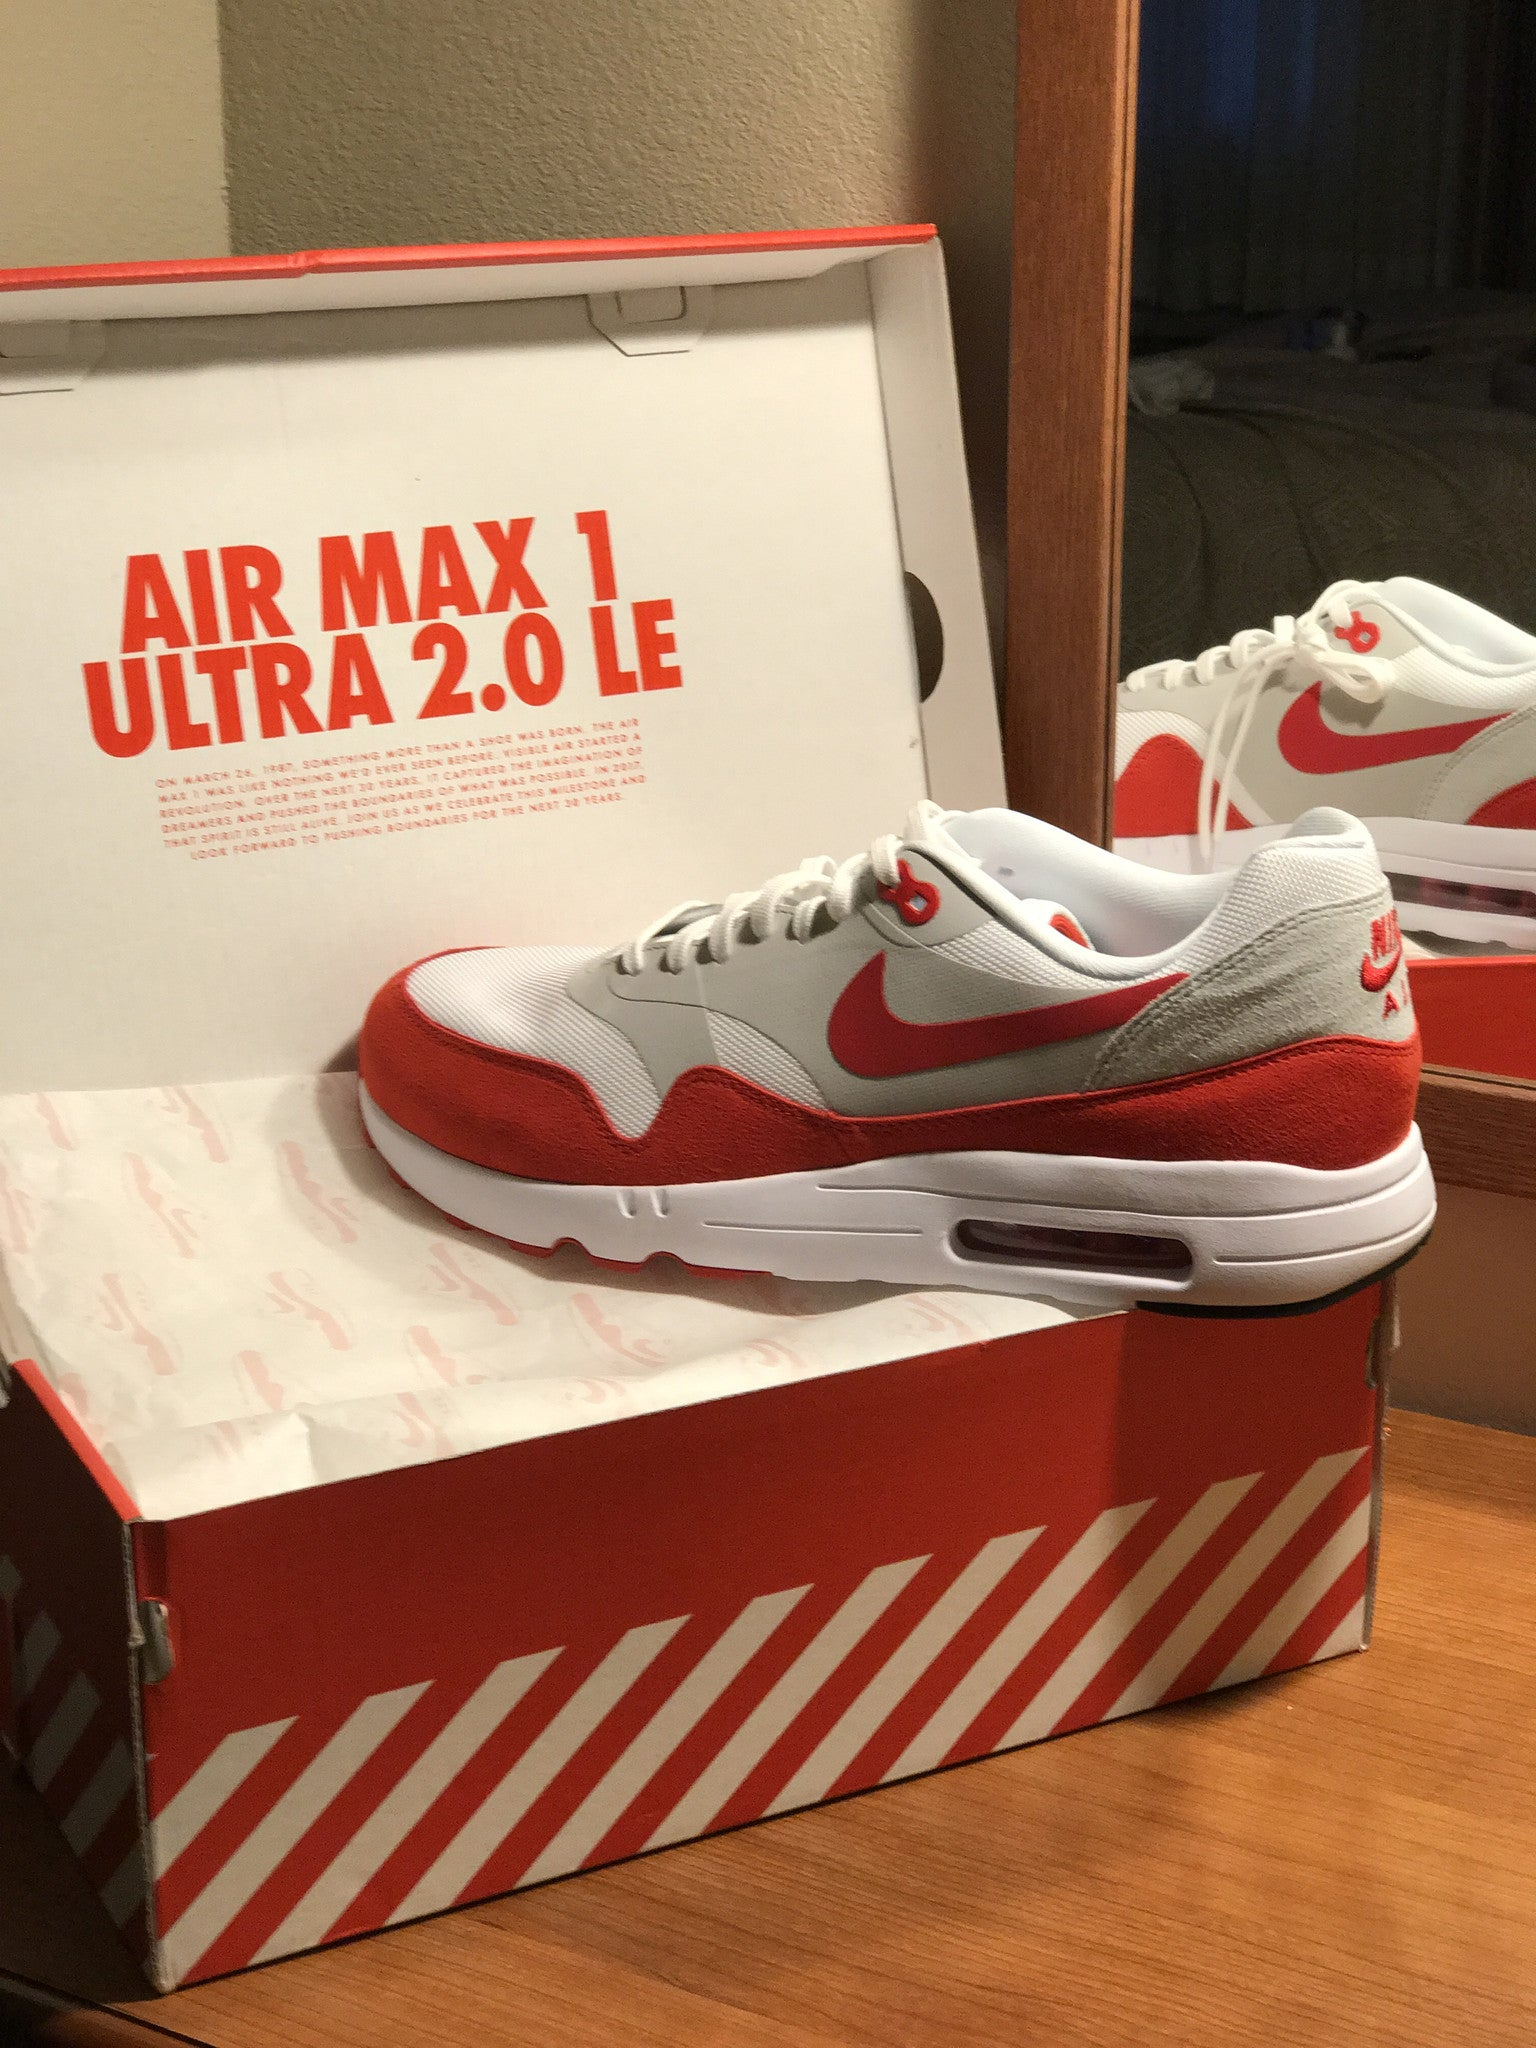 Nike Air Max 1 Ultra 2.0 (Elevated Icon 30th B-day Edition)